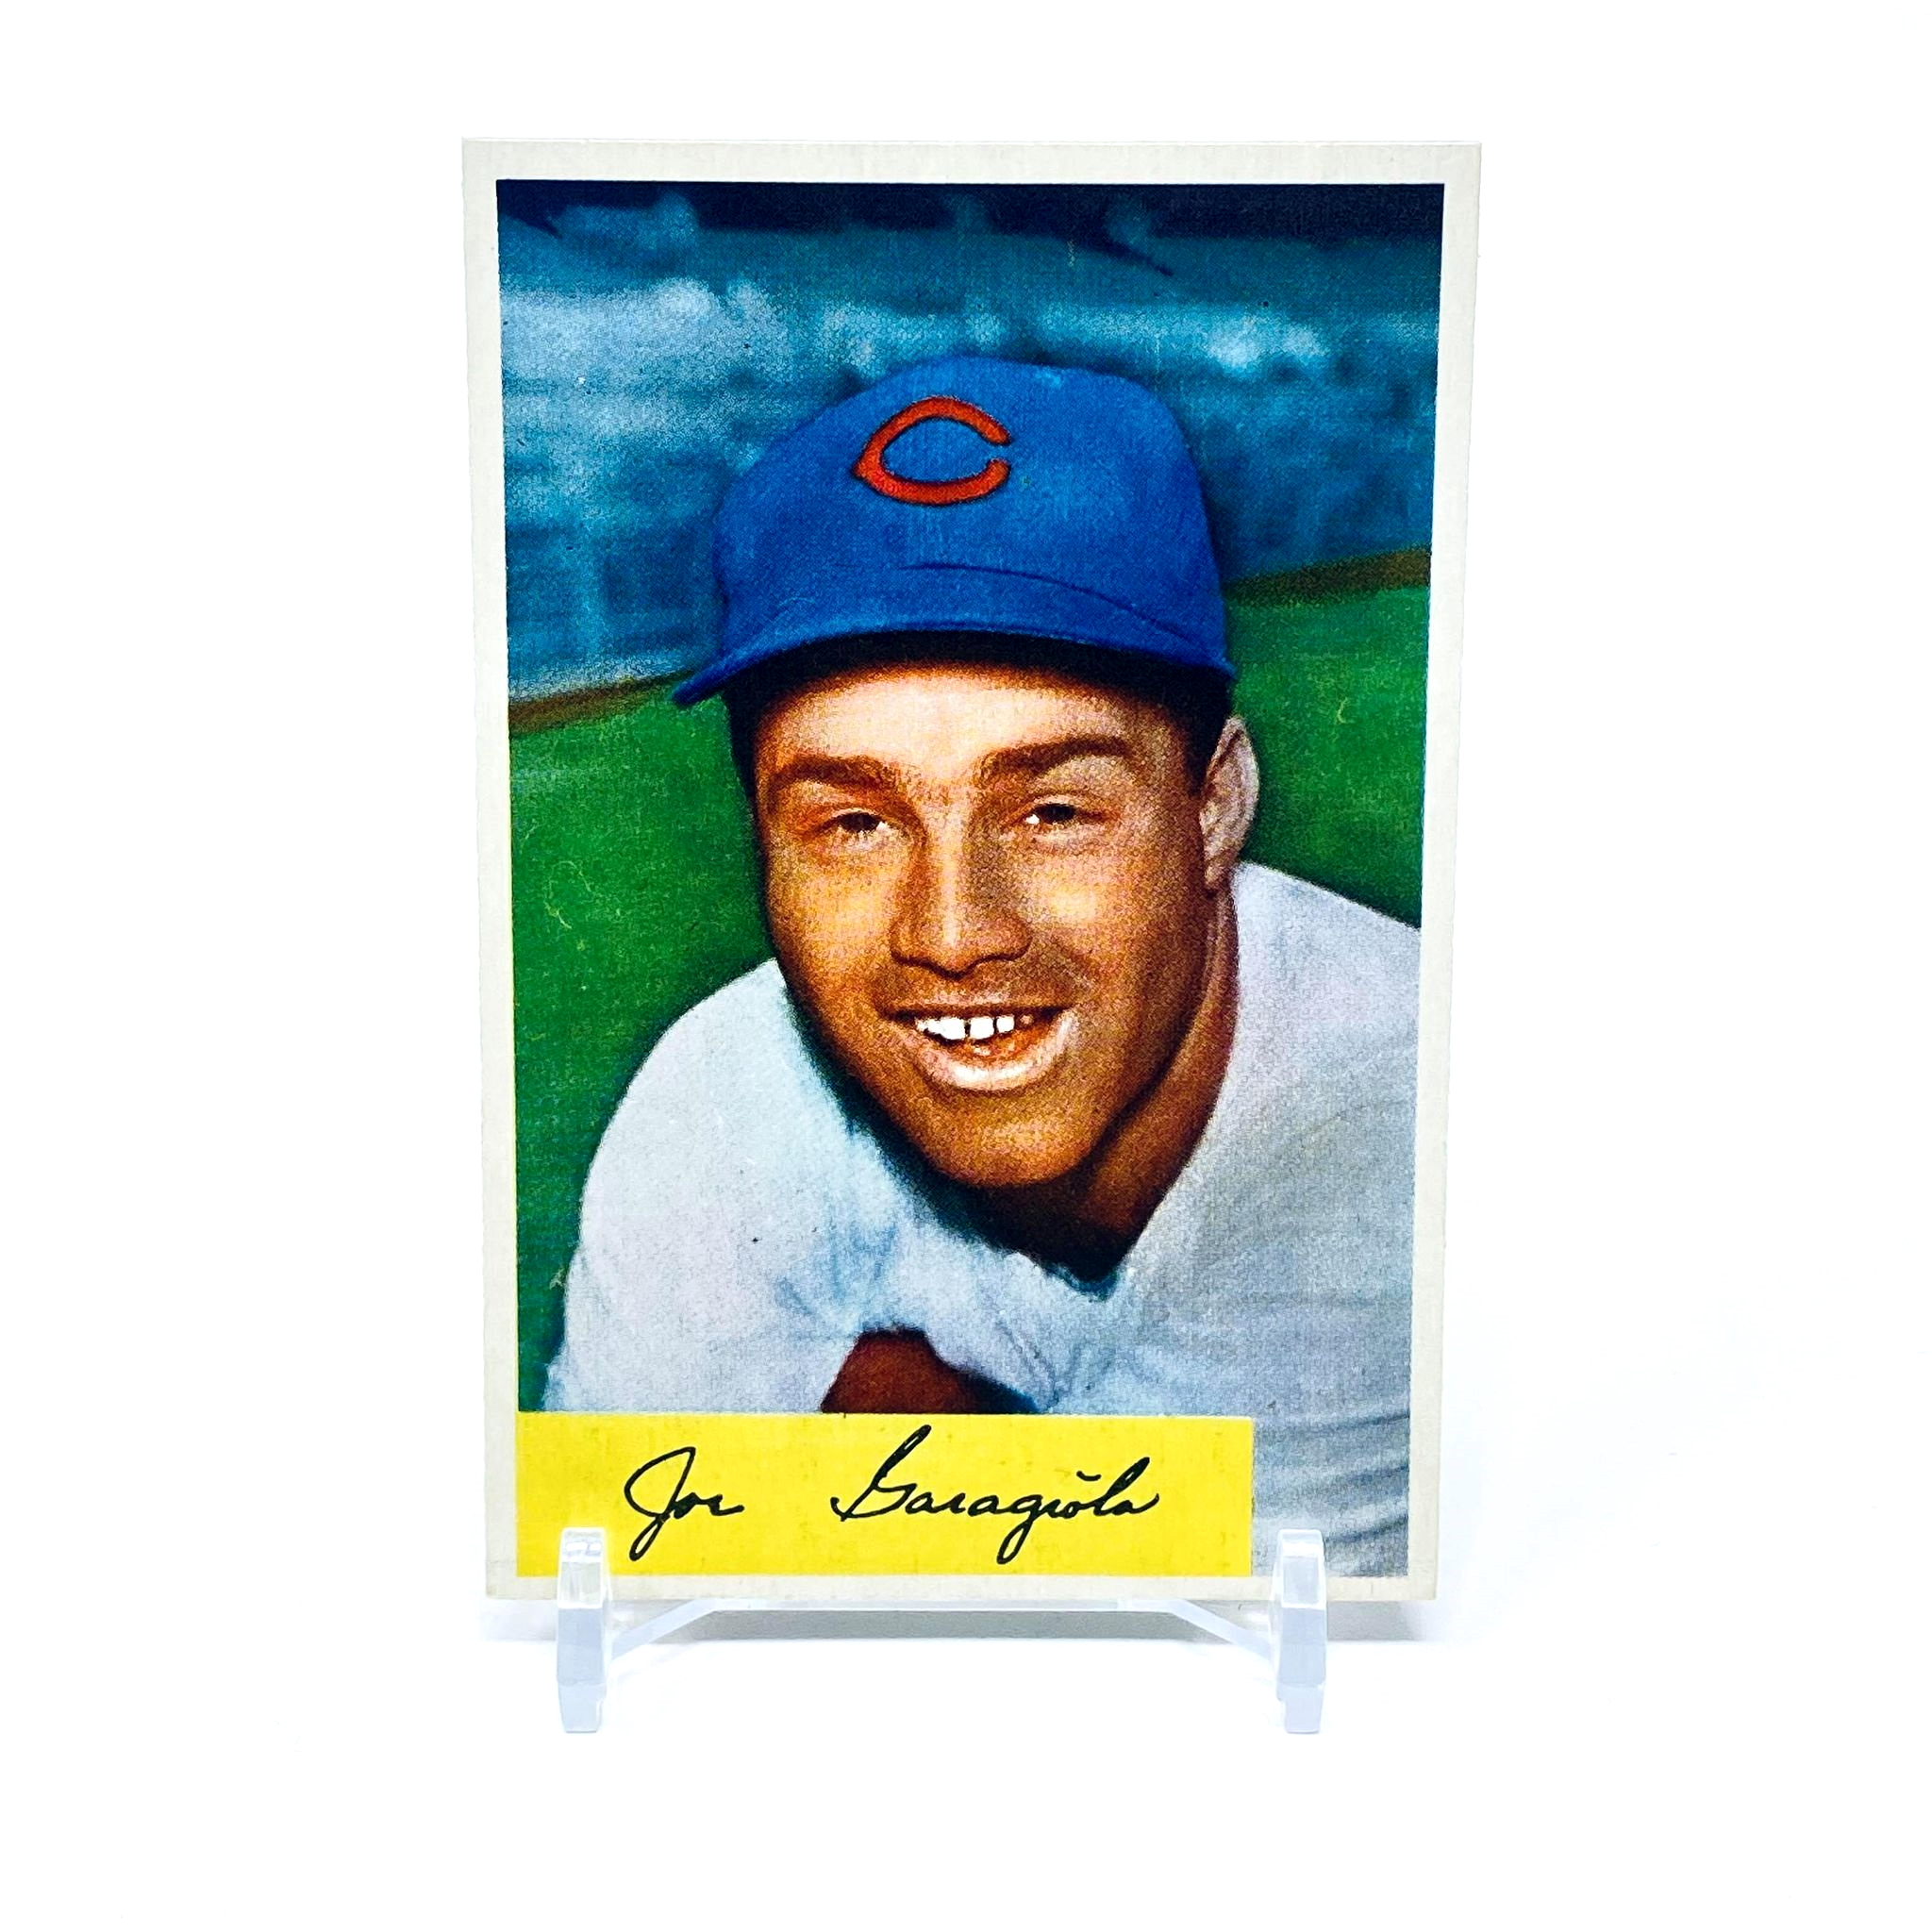 1954 Bowman Joe Garagiola Chicago Cubs